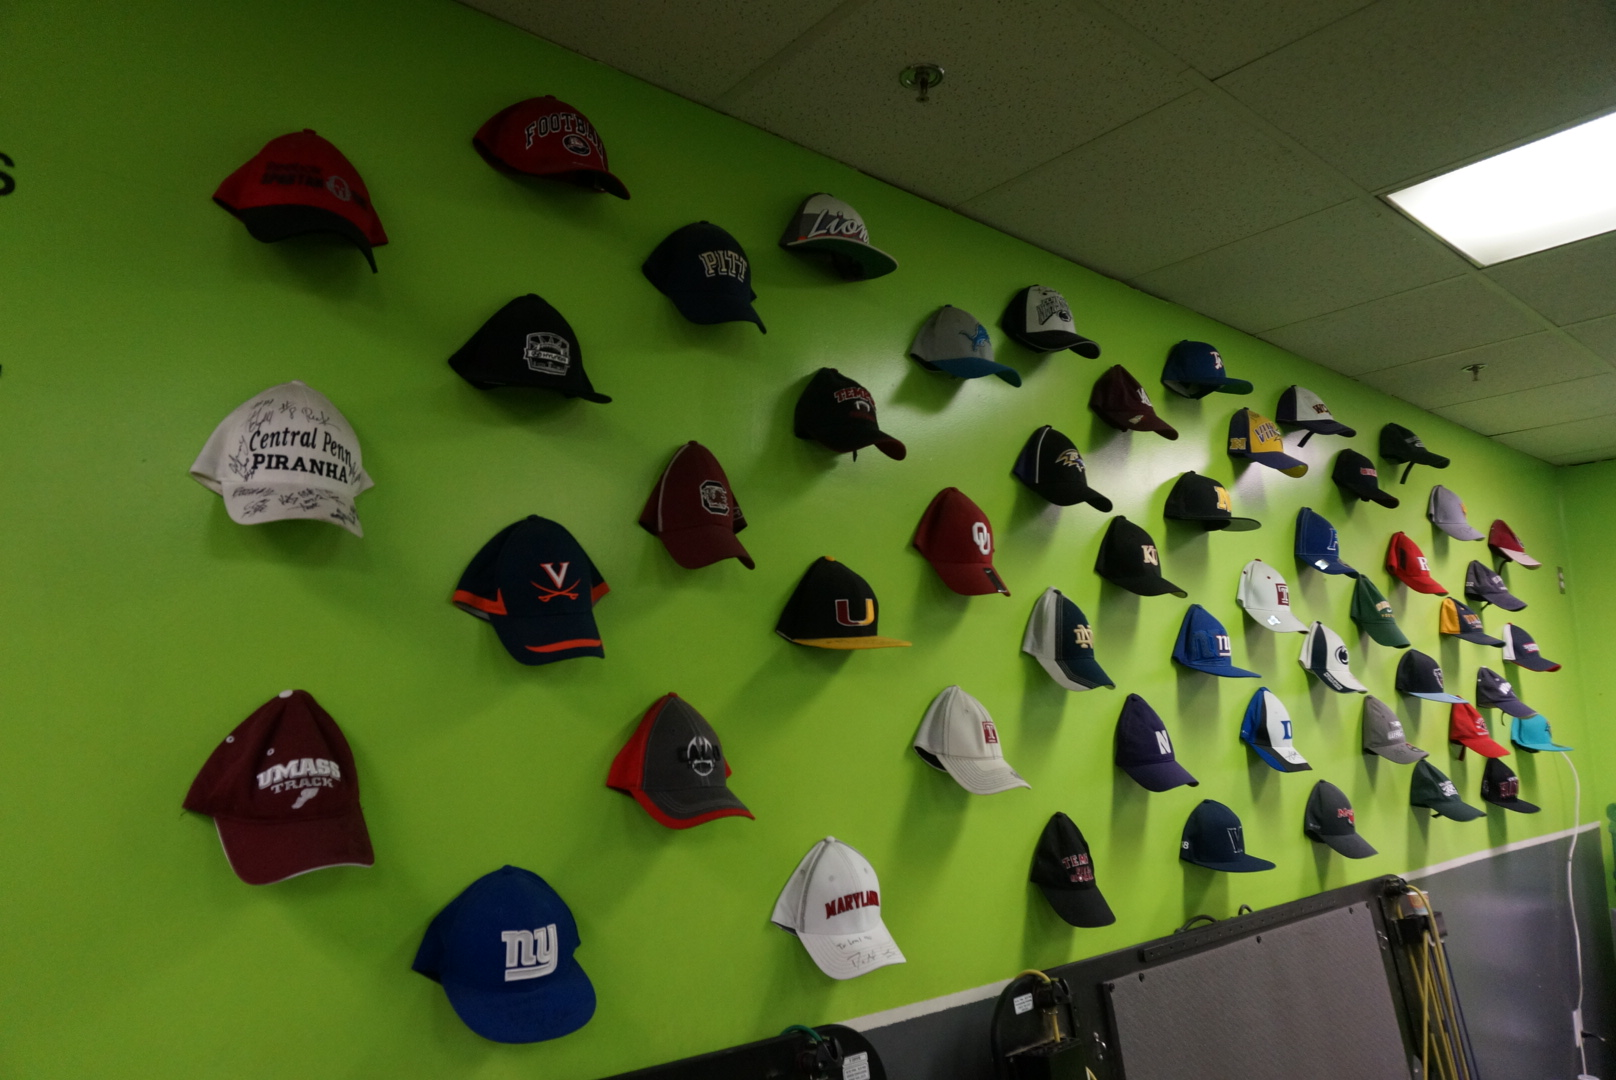 Trainer Greg Garrett says his wall of hats of players who have trained with him is his resume. (Photo: Greg Garrett).